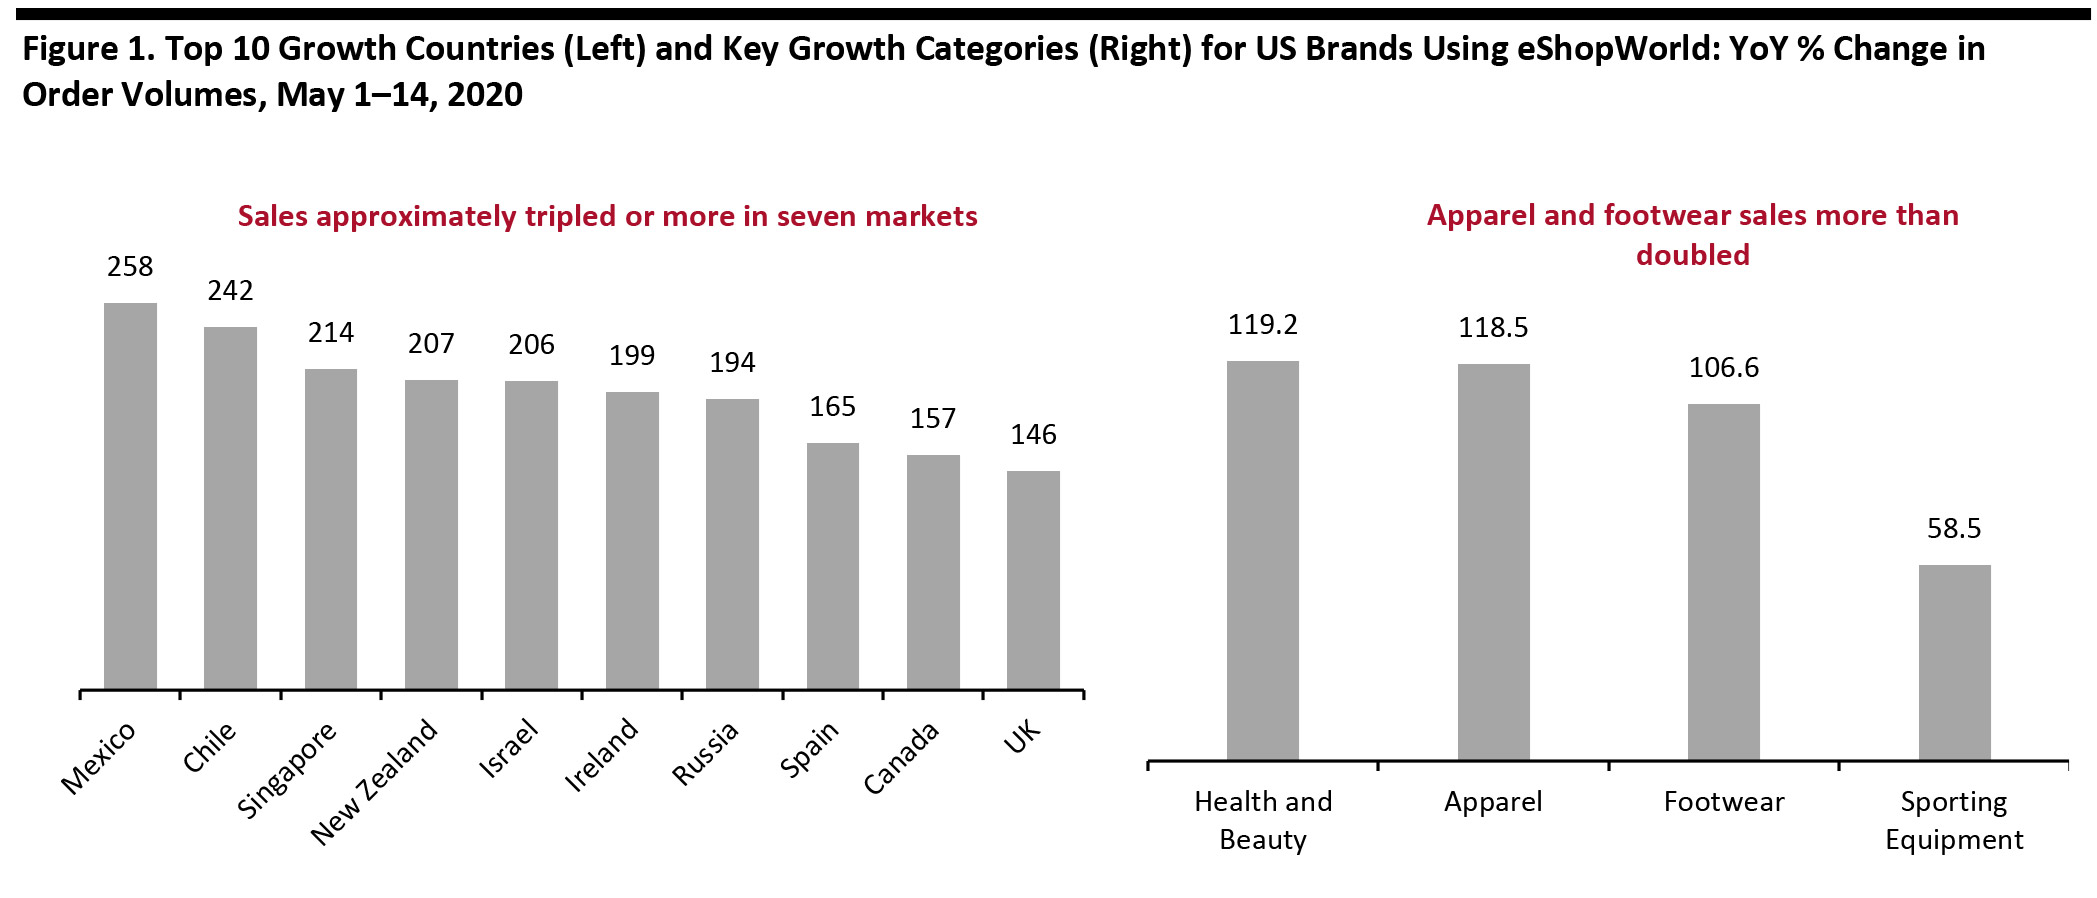 Figure 1. Top 10 Growth Countries (Left) and Key Growth Categories (Right) for US Brands Using eShopWorld: YoY % Change in Order Volumes, May 1–14, 2020